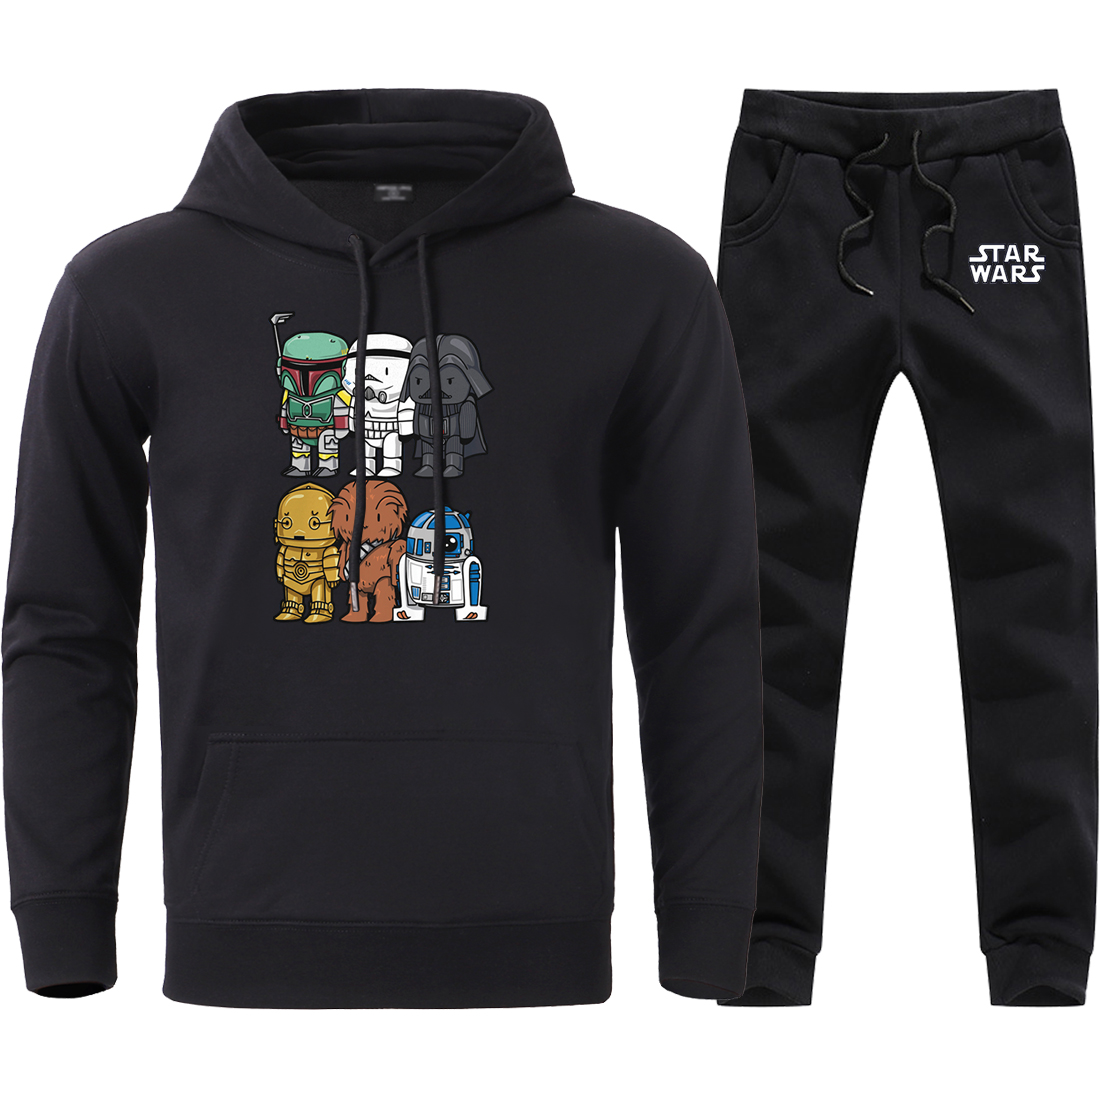 Star Wars Yoda Print Sweatshirts Hoodies Pants 2 Piece Sets 2020 Man Brand Fashion Hooded Sweatpant Male Long Sleeve Casual Suit